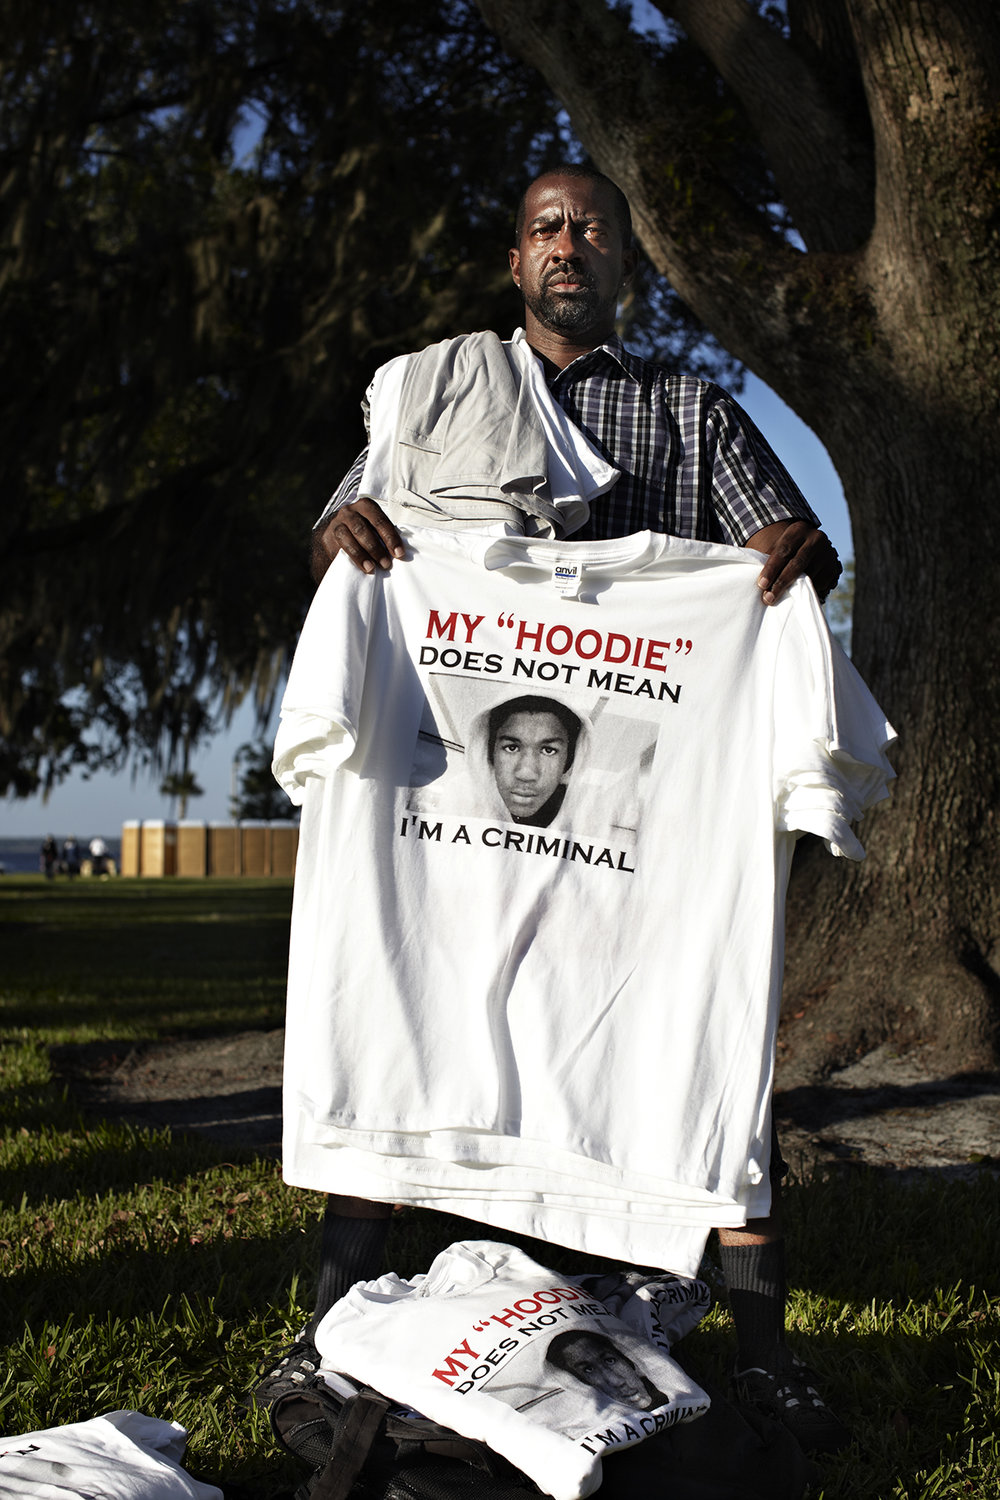 Trayvon Martin supporters protest for justice - Sanford, FL